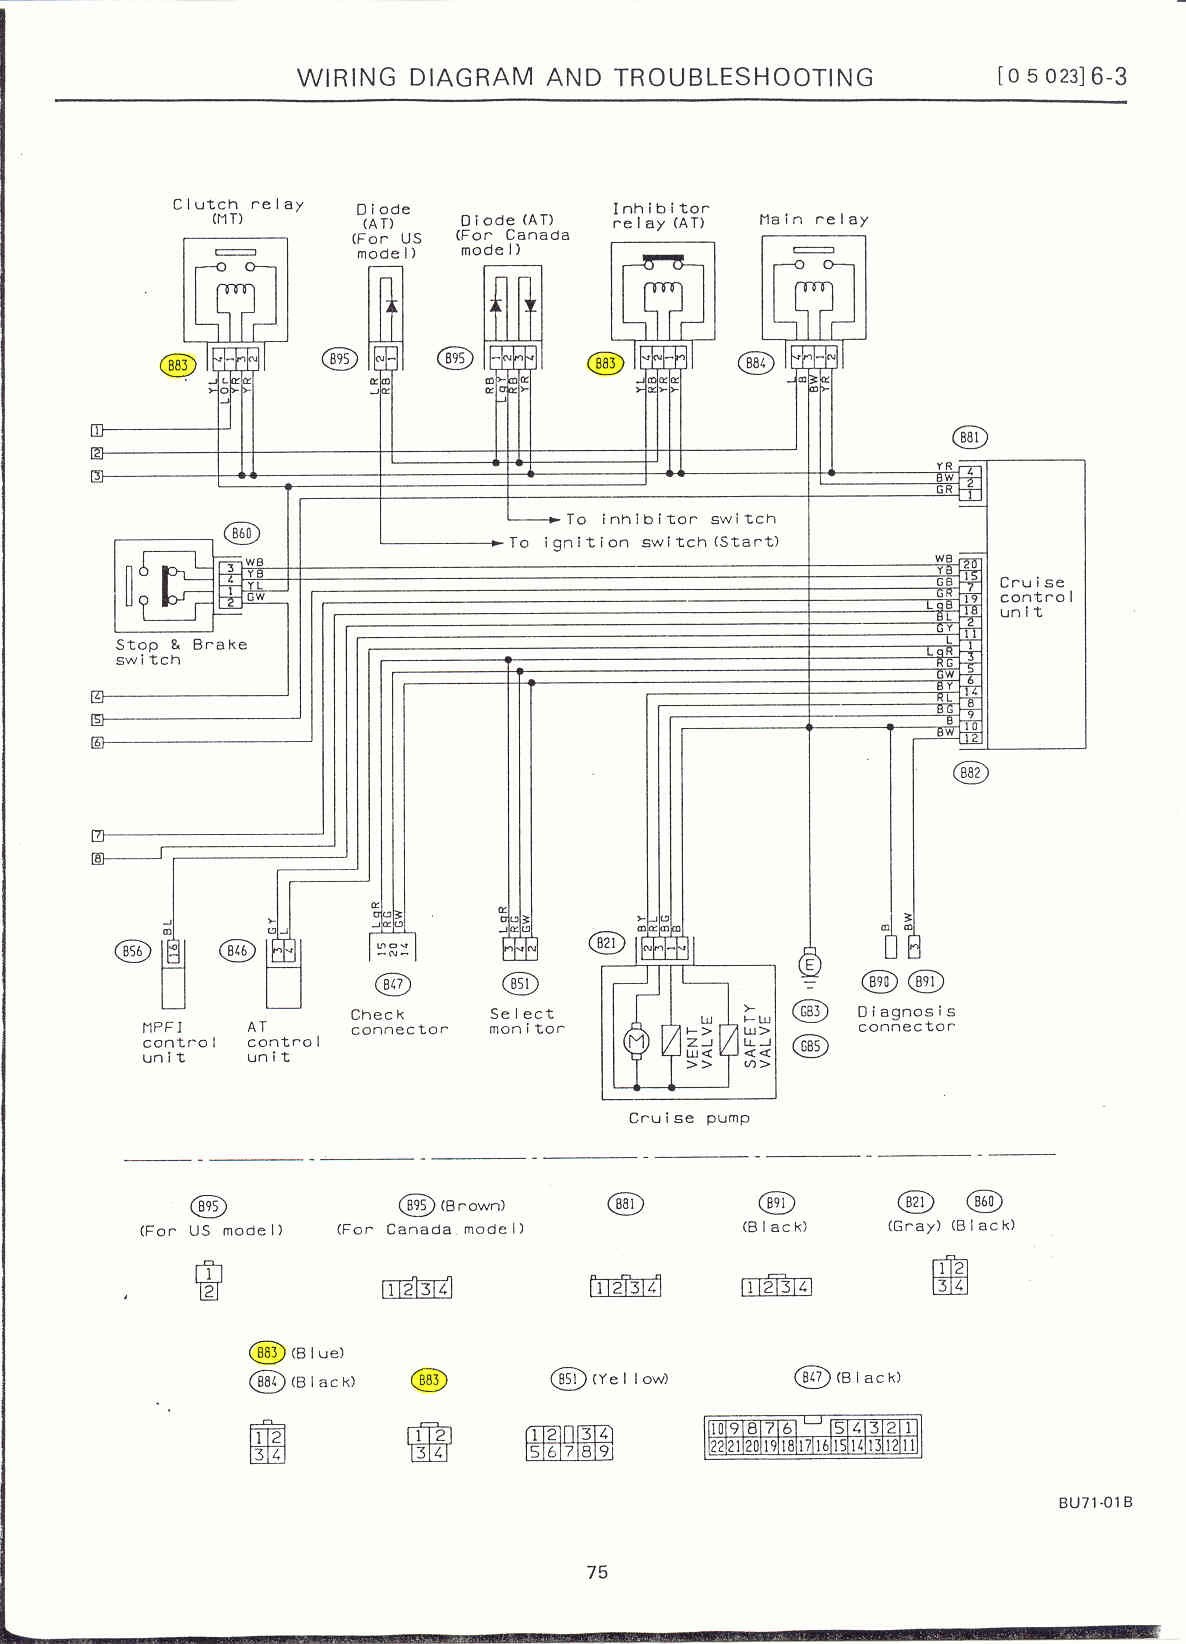 2002 subaru legacy wiring diagram wire center u2022 rh bleongroup co Subaru Wiring Harness Diagram Subaru Radio Wiring Diagram